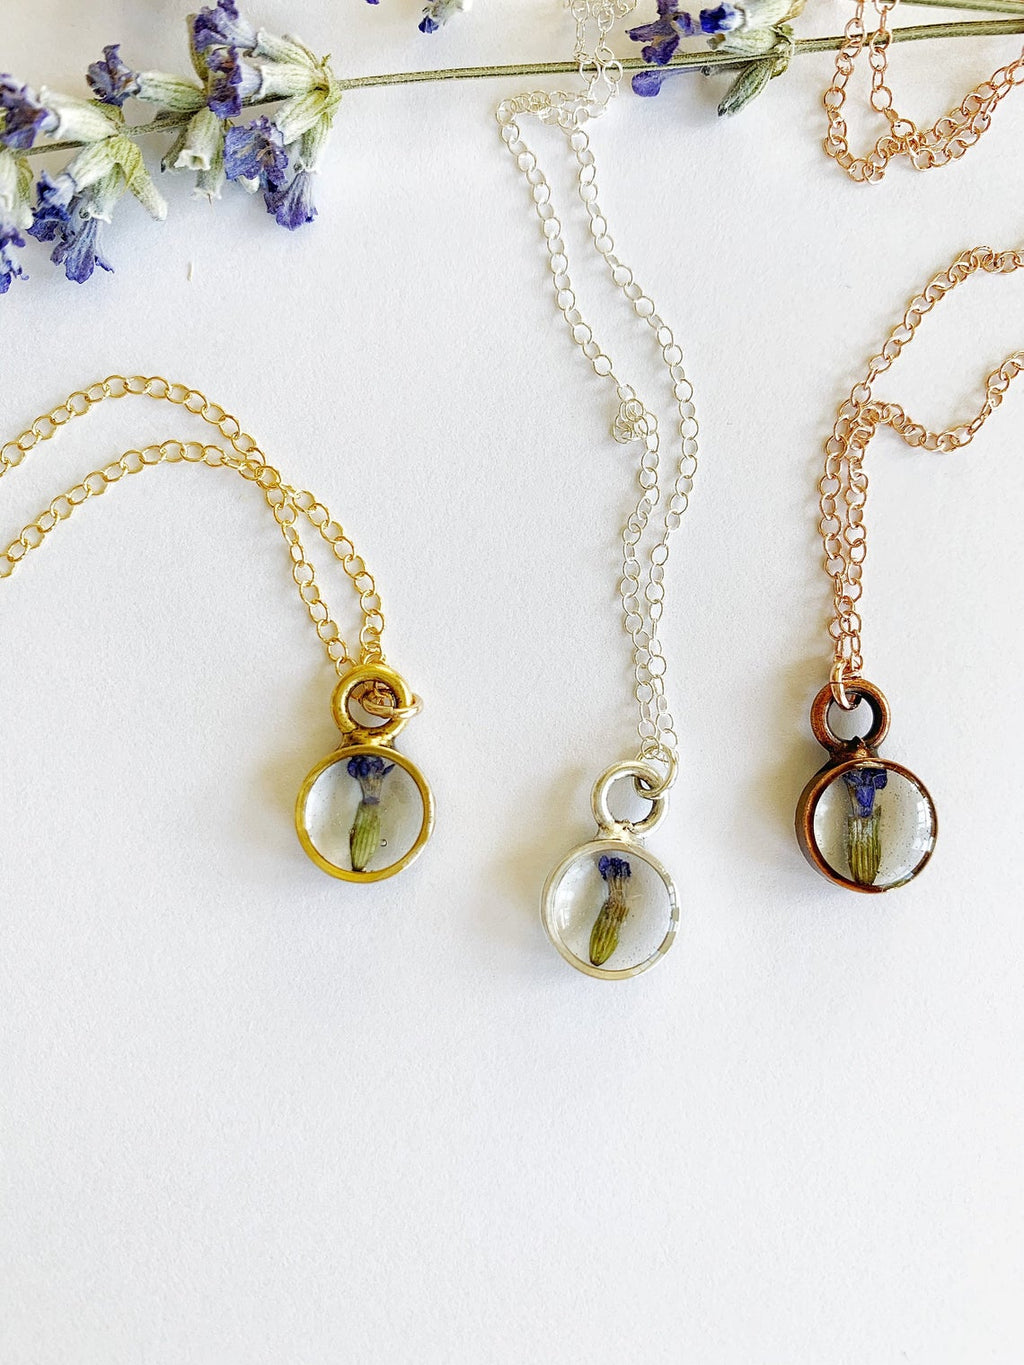 Dainty Lavender Bud Necklace